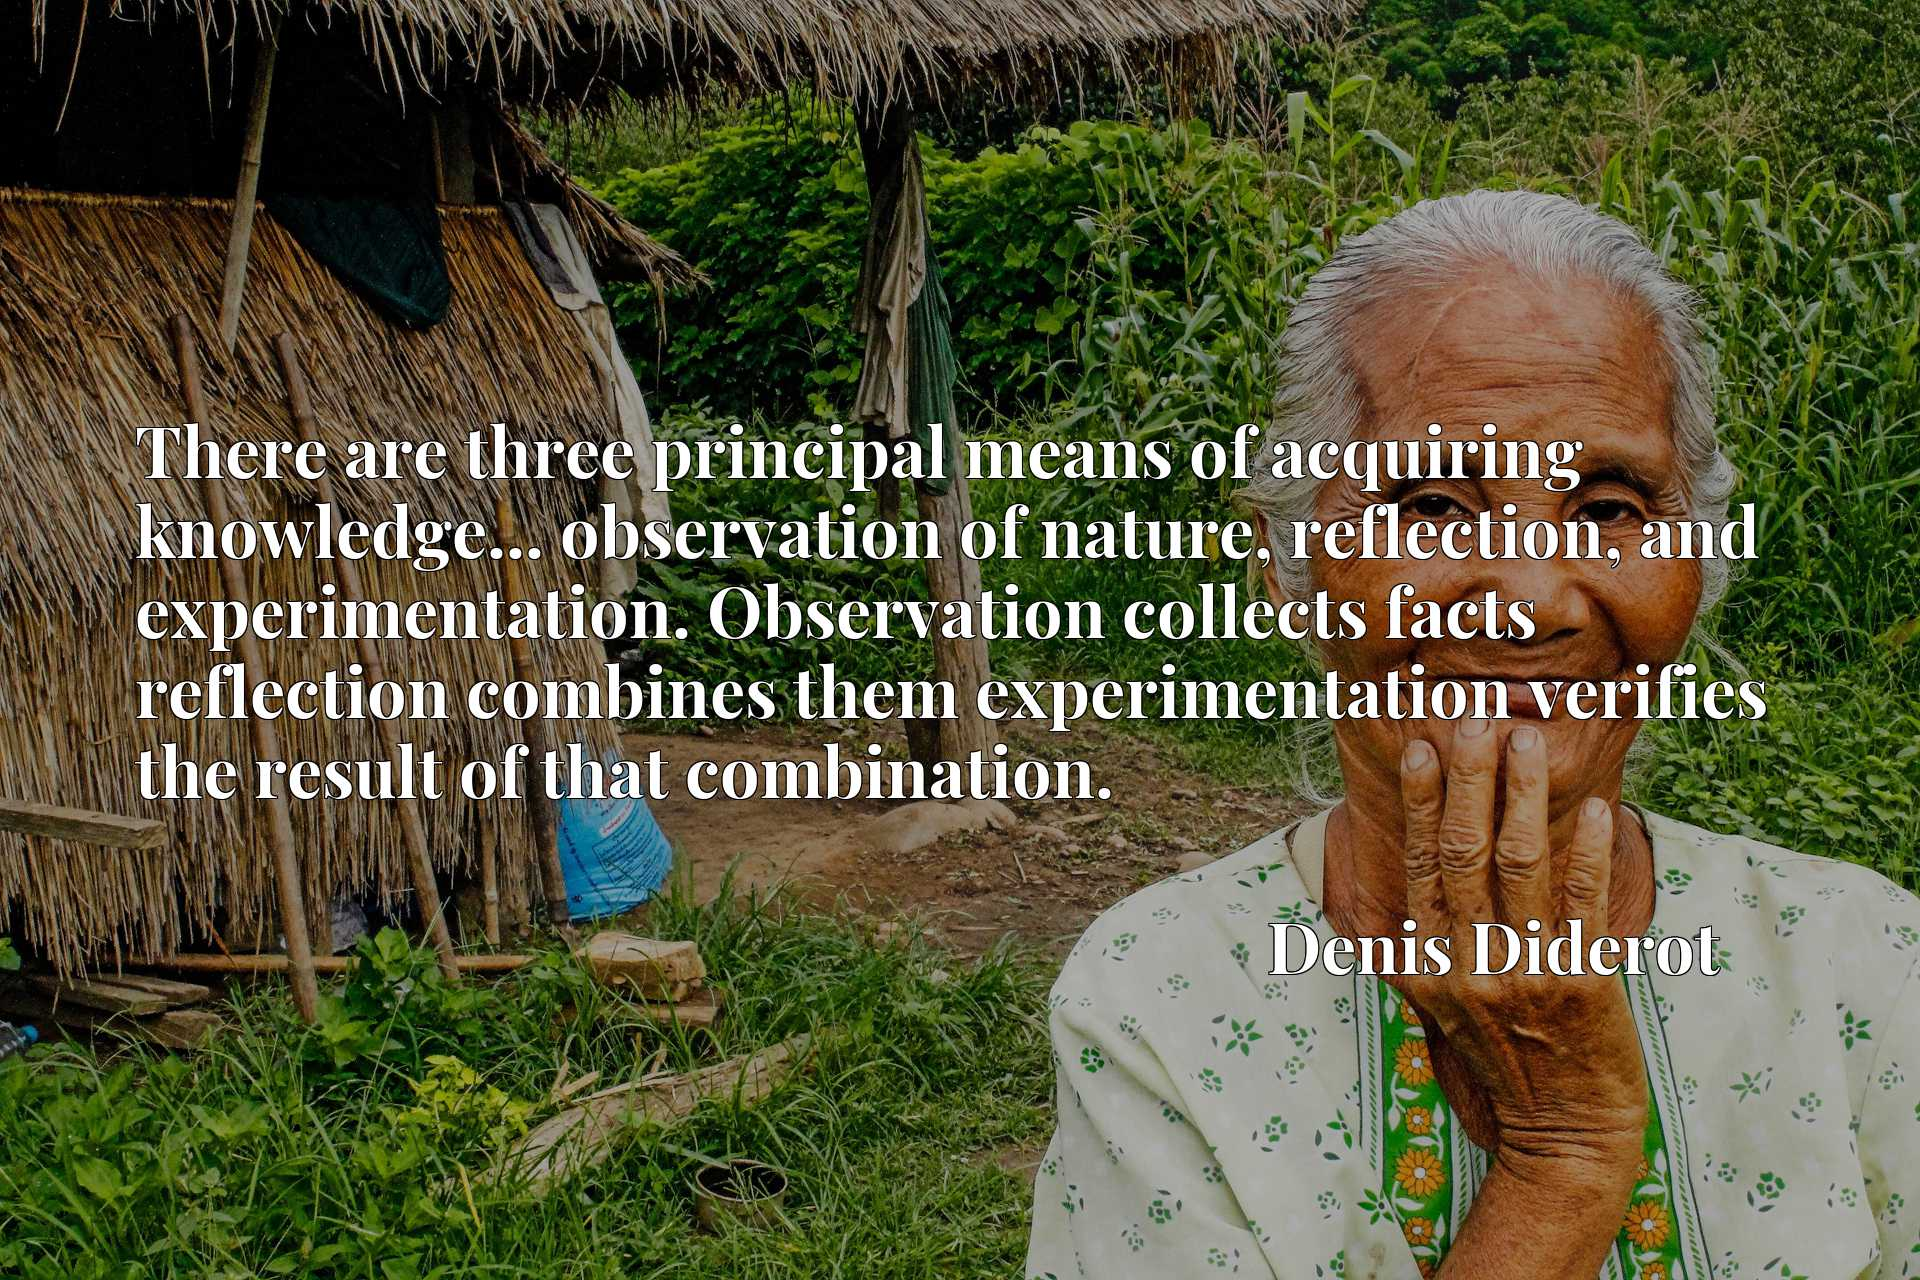 There are three principal means of acquiring knowledge... observation of nature, reflection, and experimentation. Observation collects facts reflection combines them experimentation verifies the result of that combination.